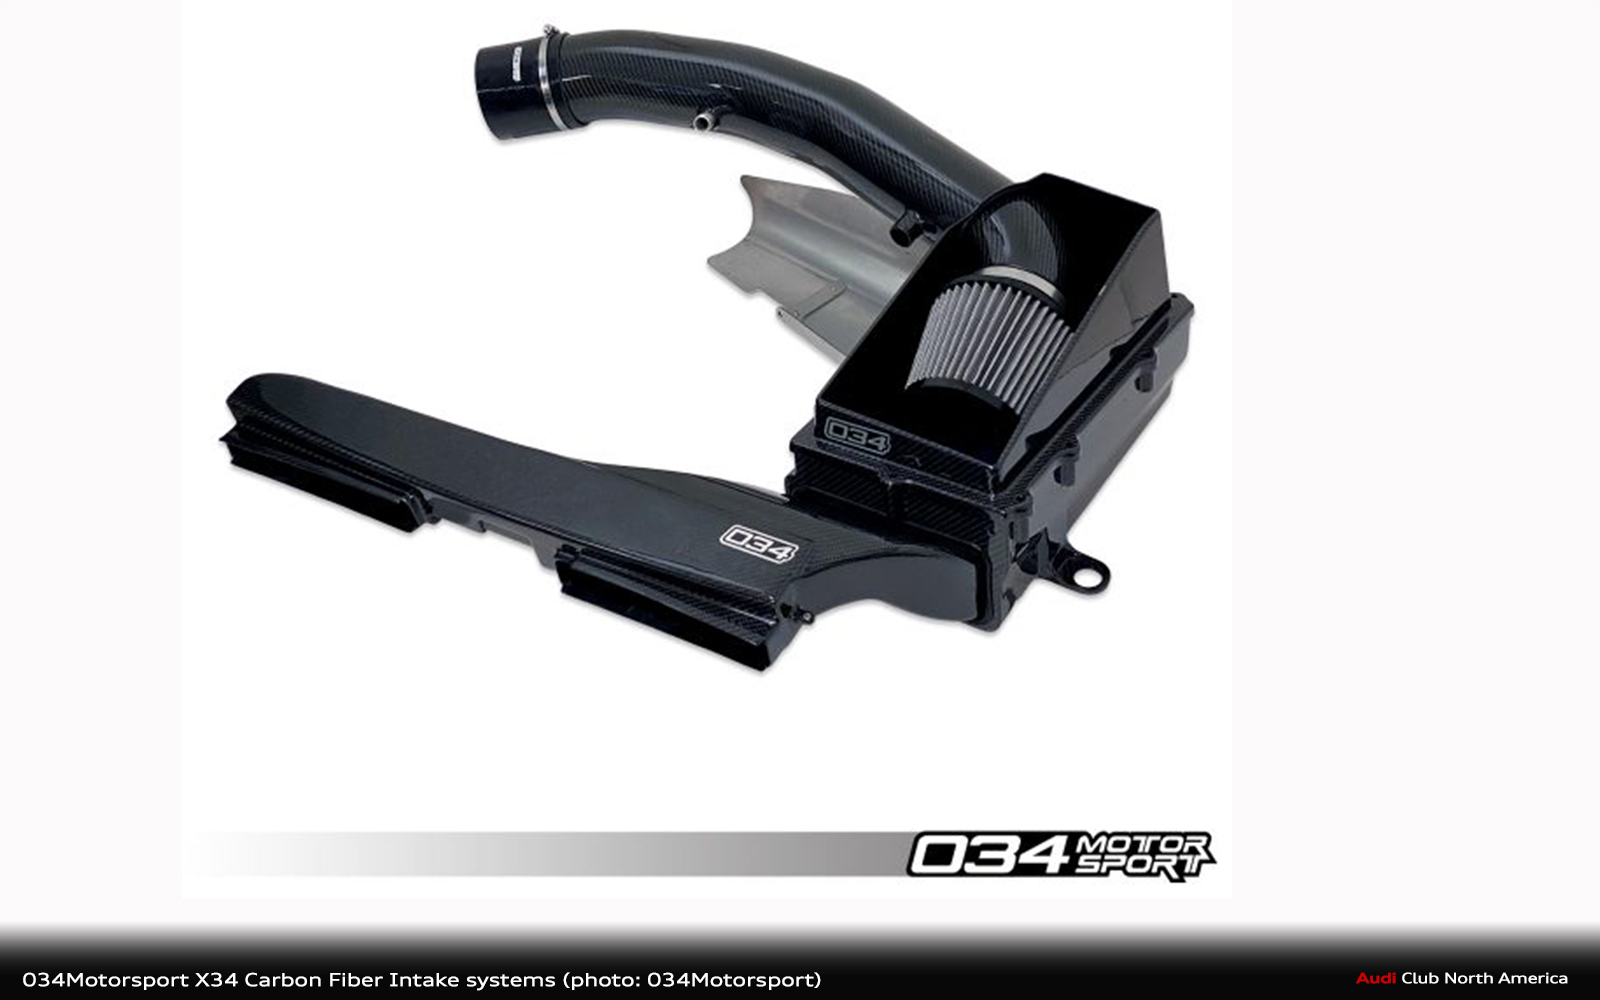 034Motorsport X34 Carbon Fiber Intake systems for the 2.5 TFSI EVO 8S Audi TTRS and 8V.5 Audi RS3